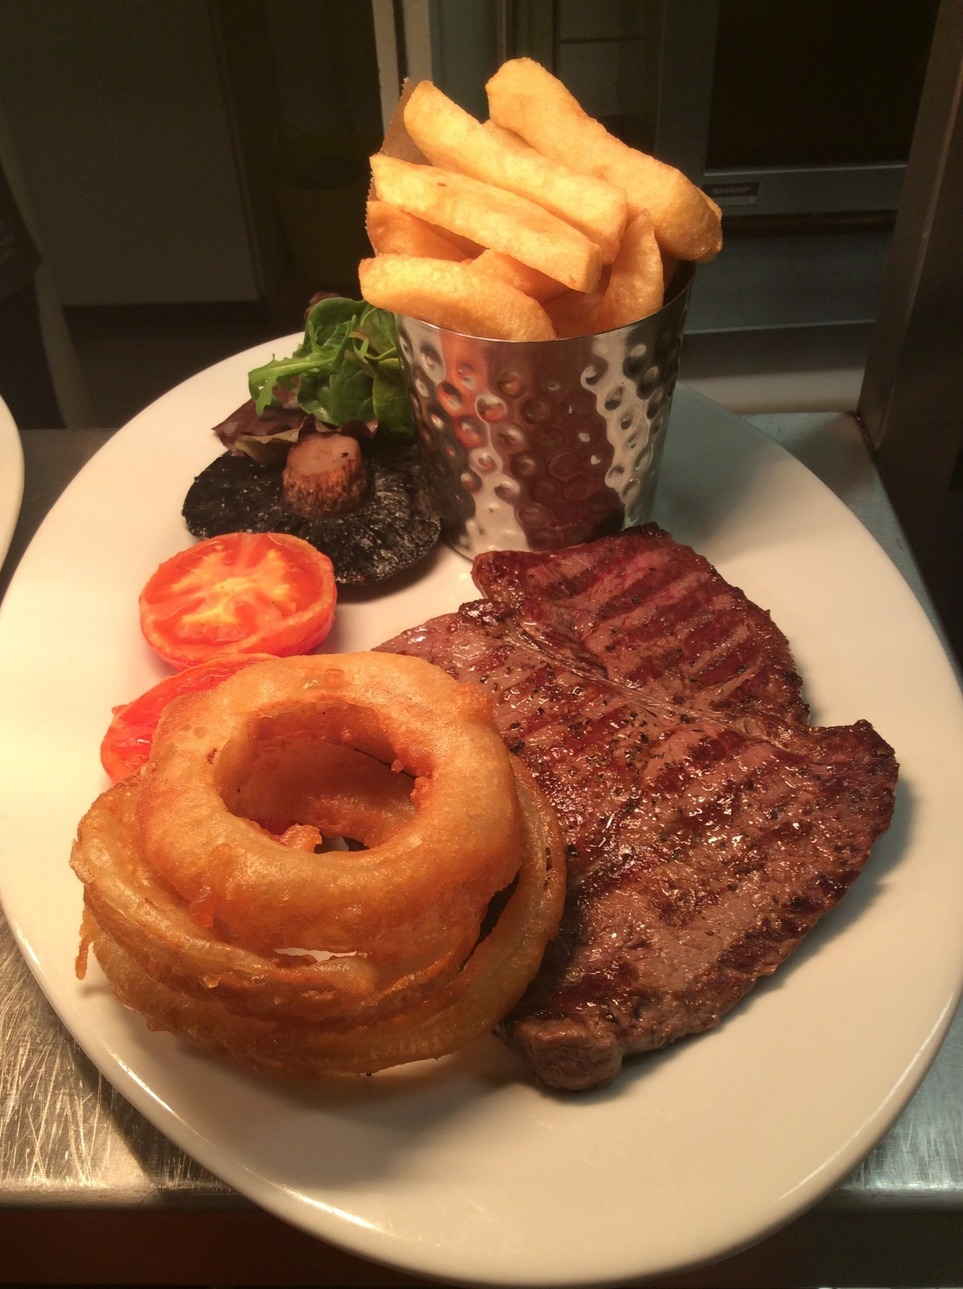 One of our delicious steak dishes